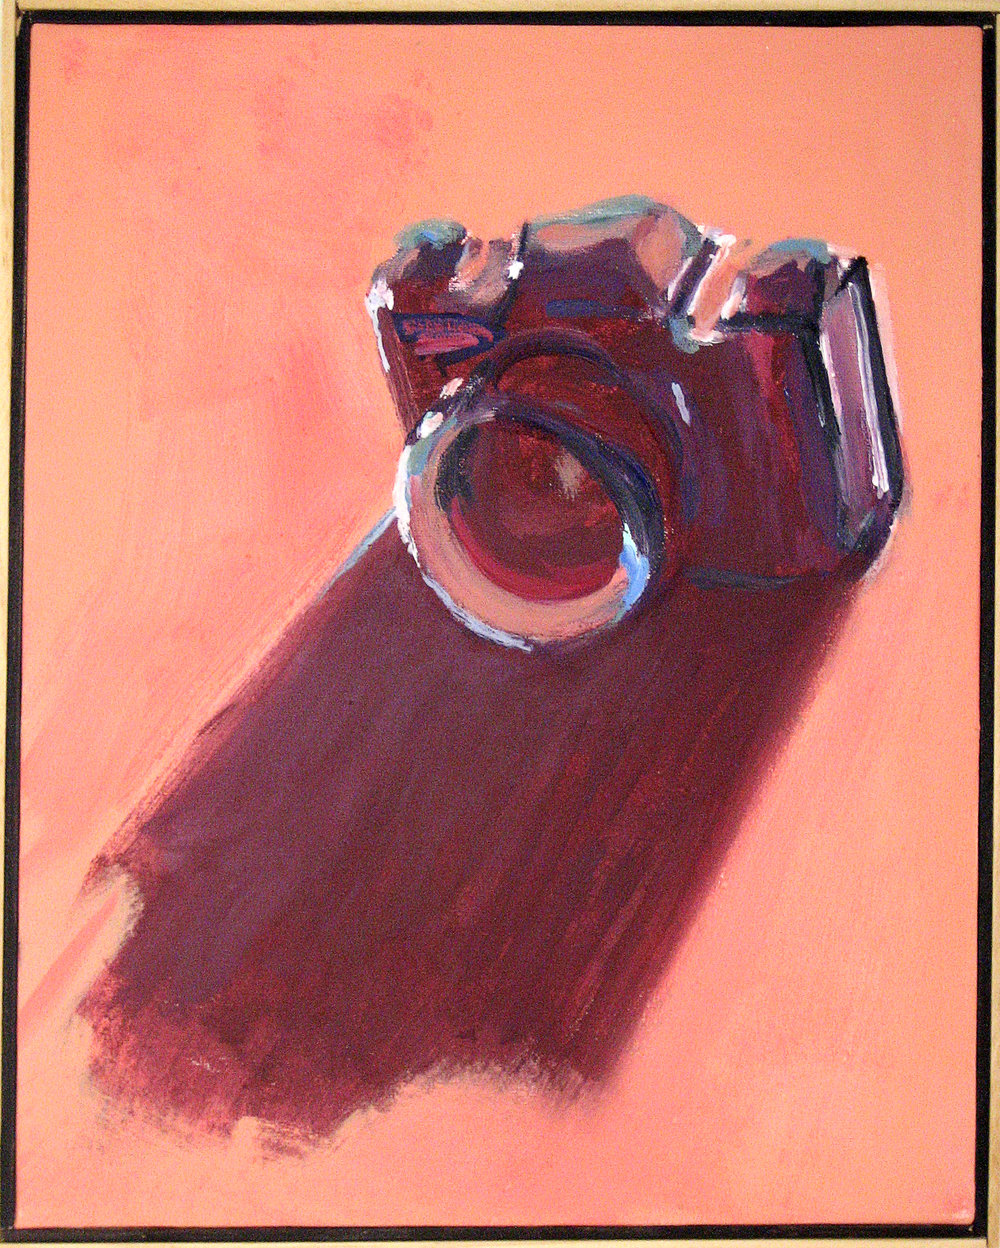 """Peter Charlap(BIO),After Image, 2004, oil on canvas, 21"""" x 17"""""""